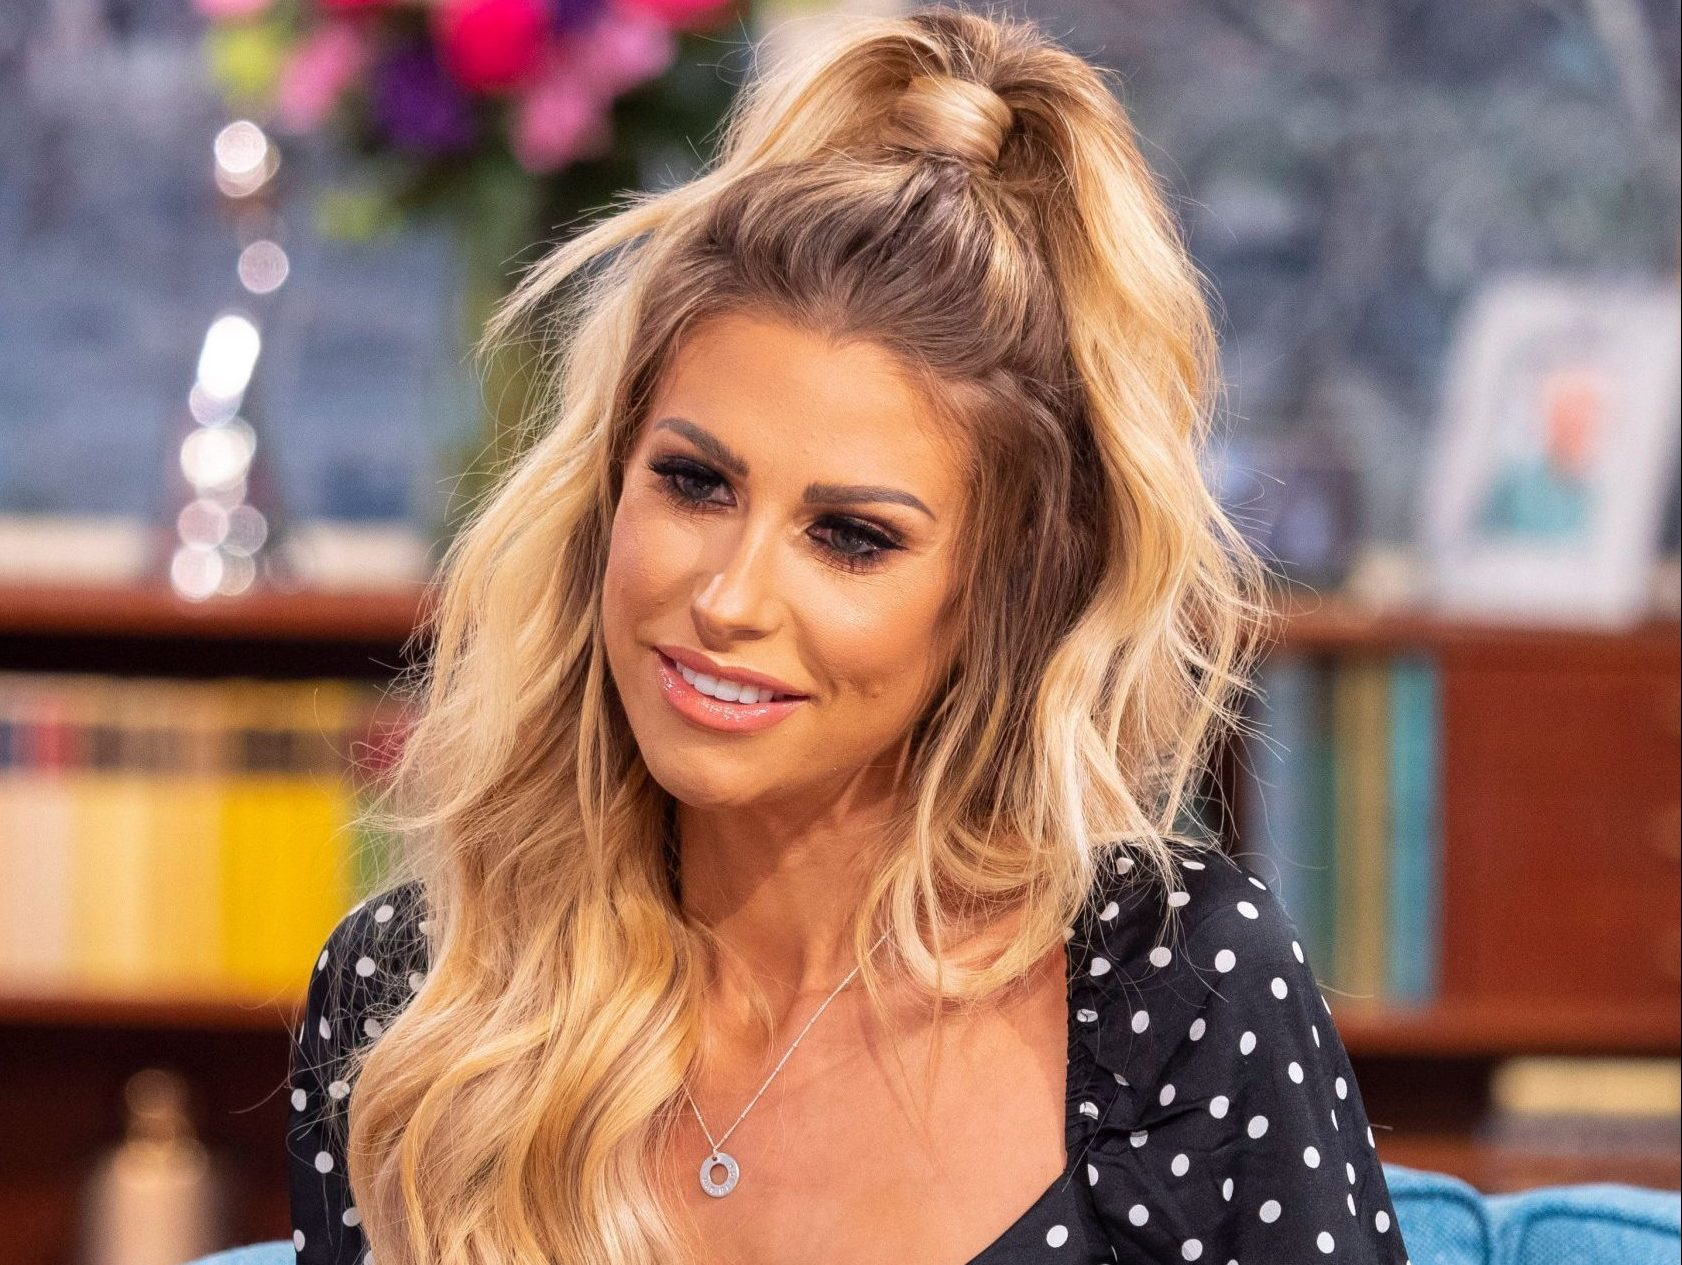 Cleaning boss Mrs Hinch has 'Love Island makeover' and comes out looking like reality star